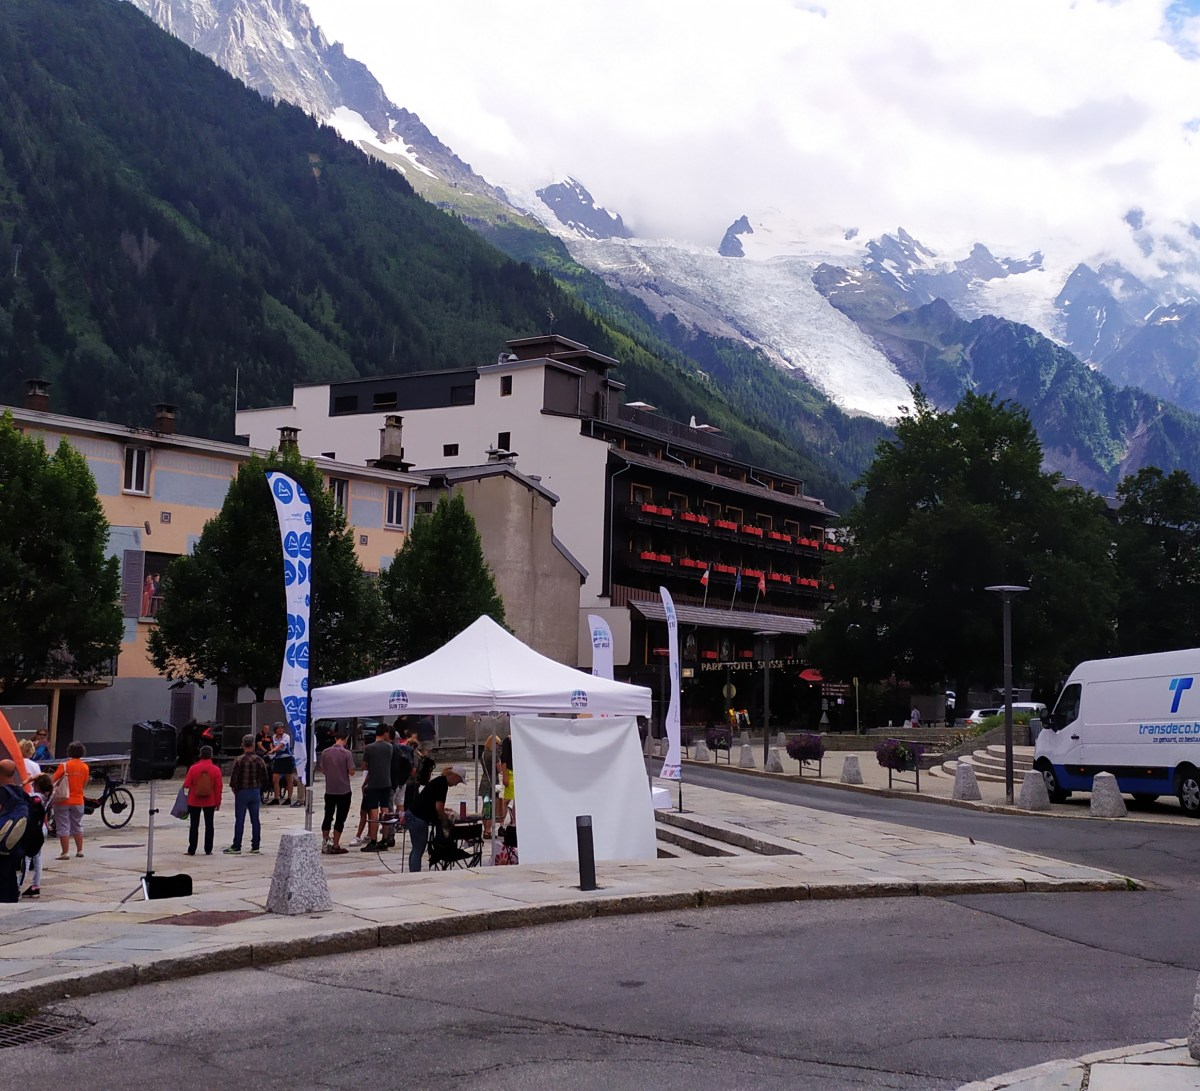 First arrived in Chamonix